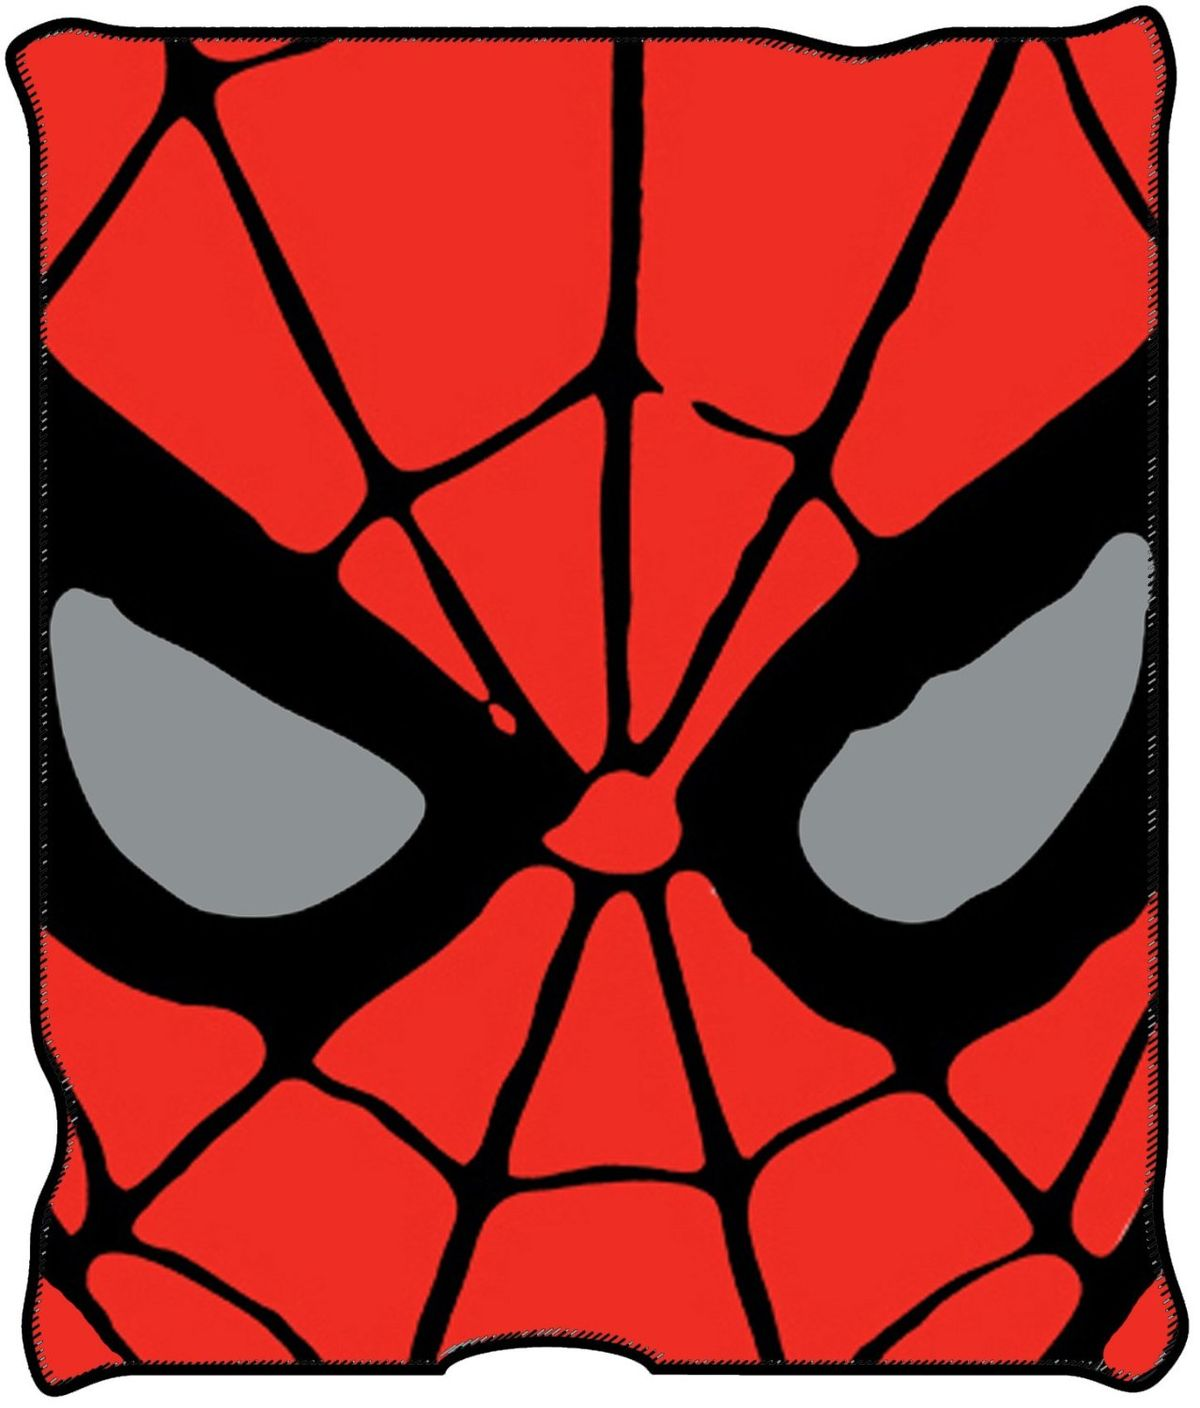 Headline for Top 10 Spiderman Throw Blanket